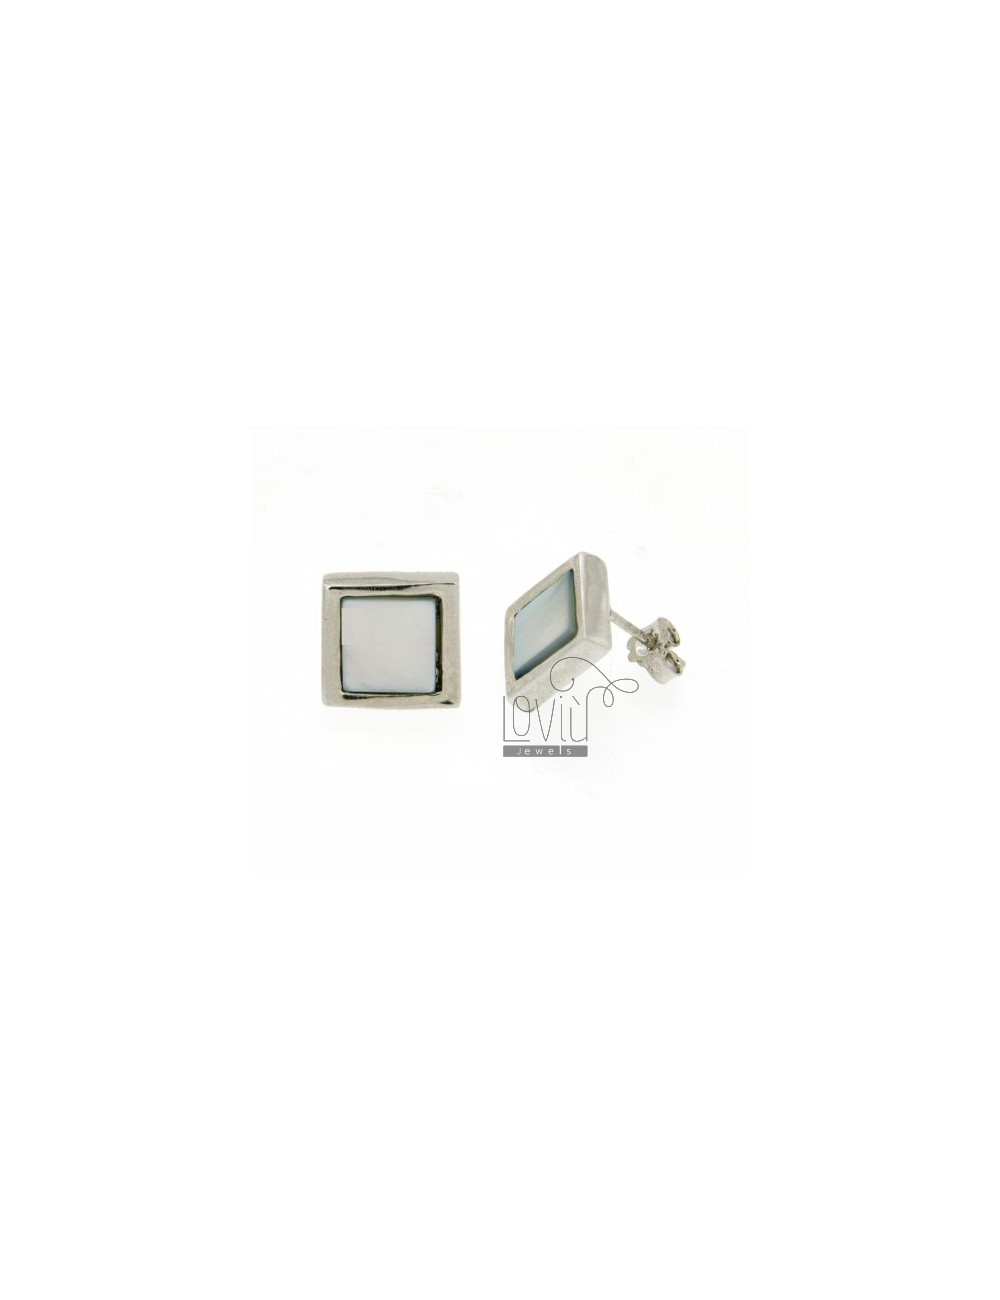 LOBO SQUARE EARRINGS WITH PEARL GREY RHODIUM AG TIT 925 ‰